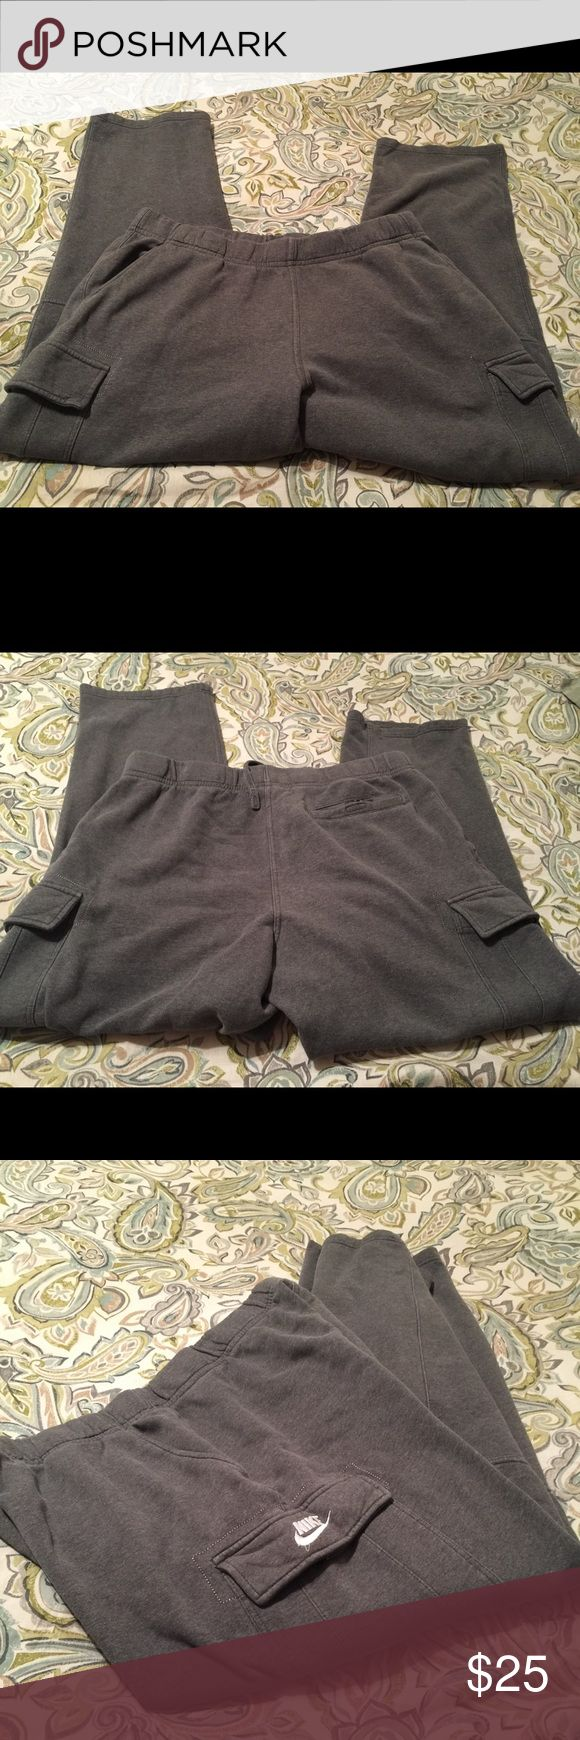 Men's Nike athletic pants size XXL. Men's Nike athletic pants size XXL. This is a great pair of gray cargo type athletic pants. They have pockets and are in great shape. Please view all pictures. Nike Pants Sweatpants & Joggers